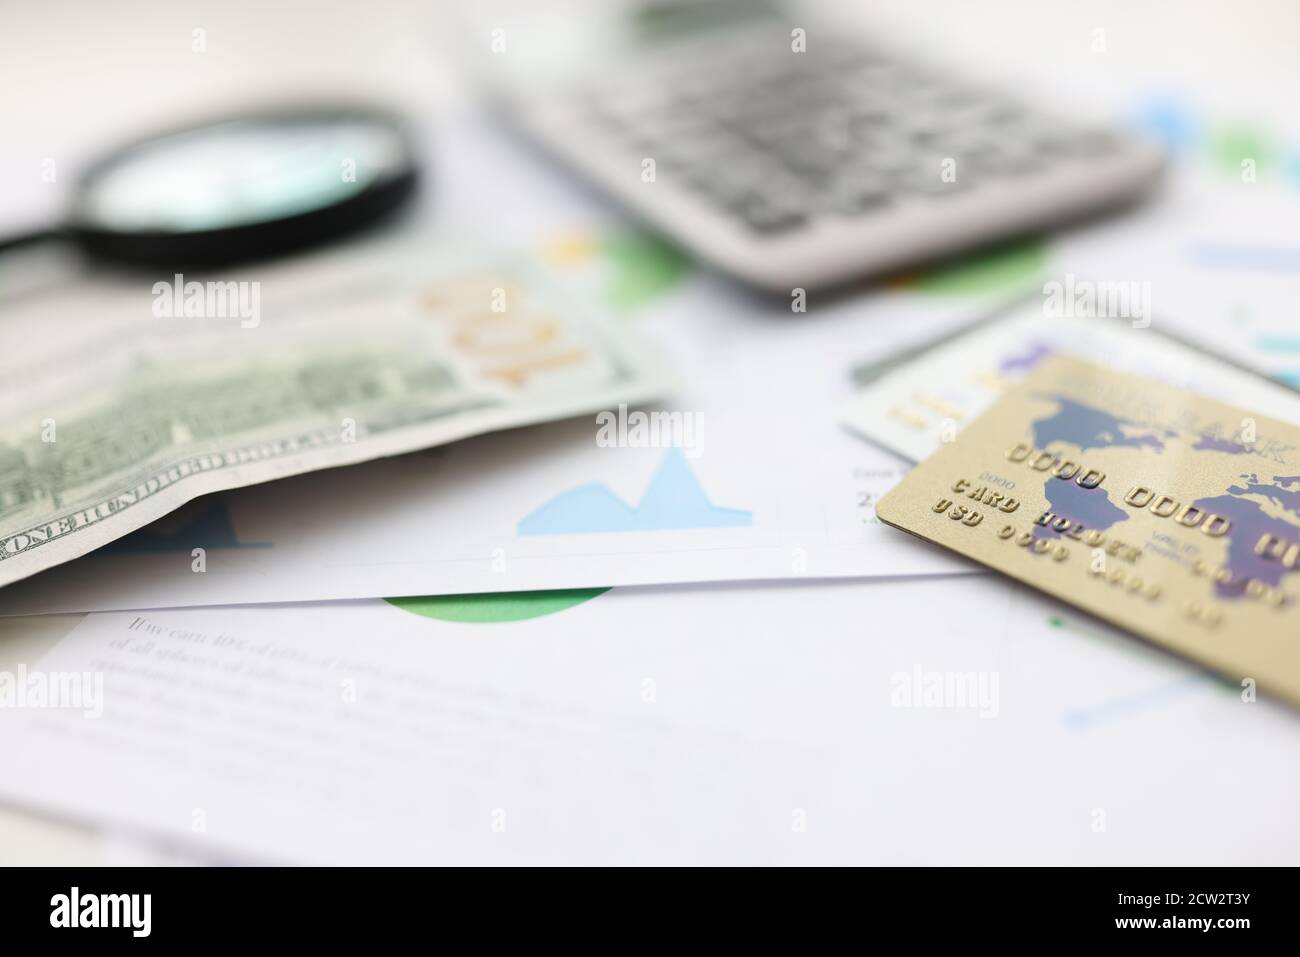 On table american dollars plastic cards and calculator and magnifying glass. Stock Photo